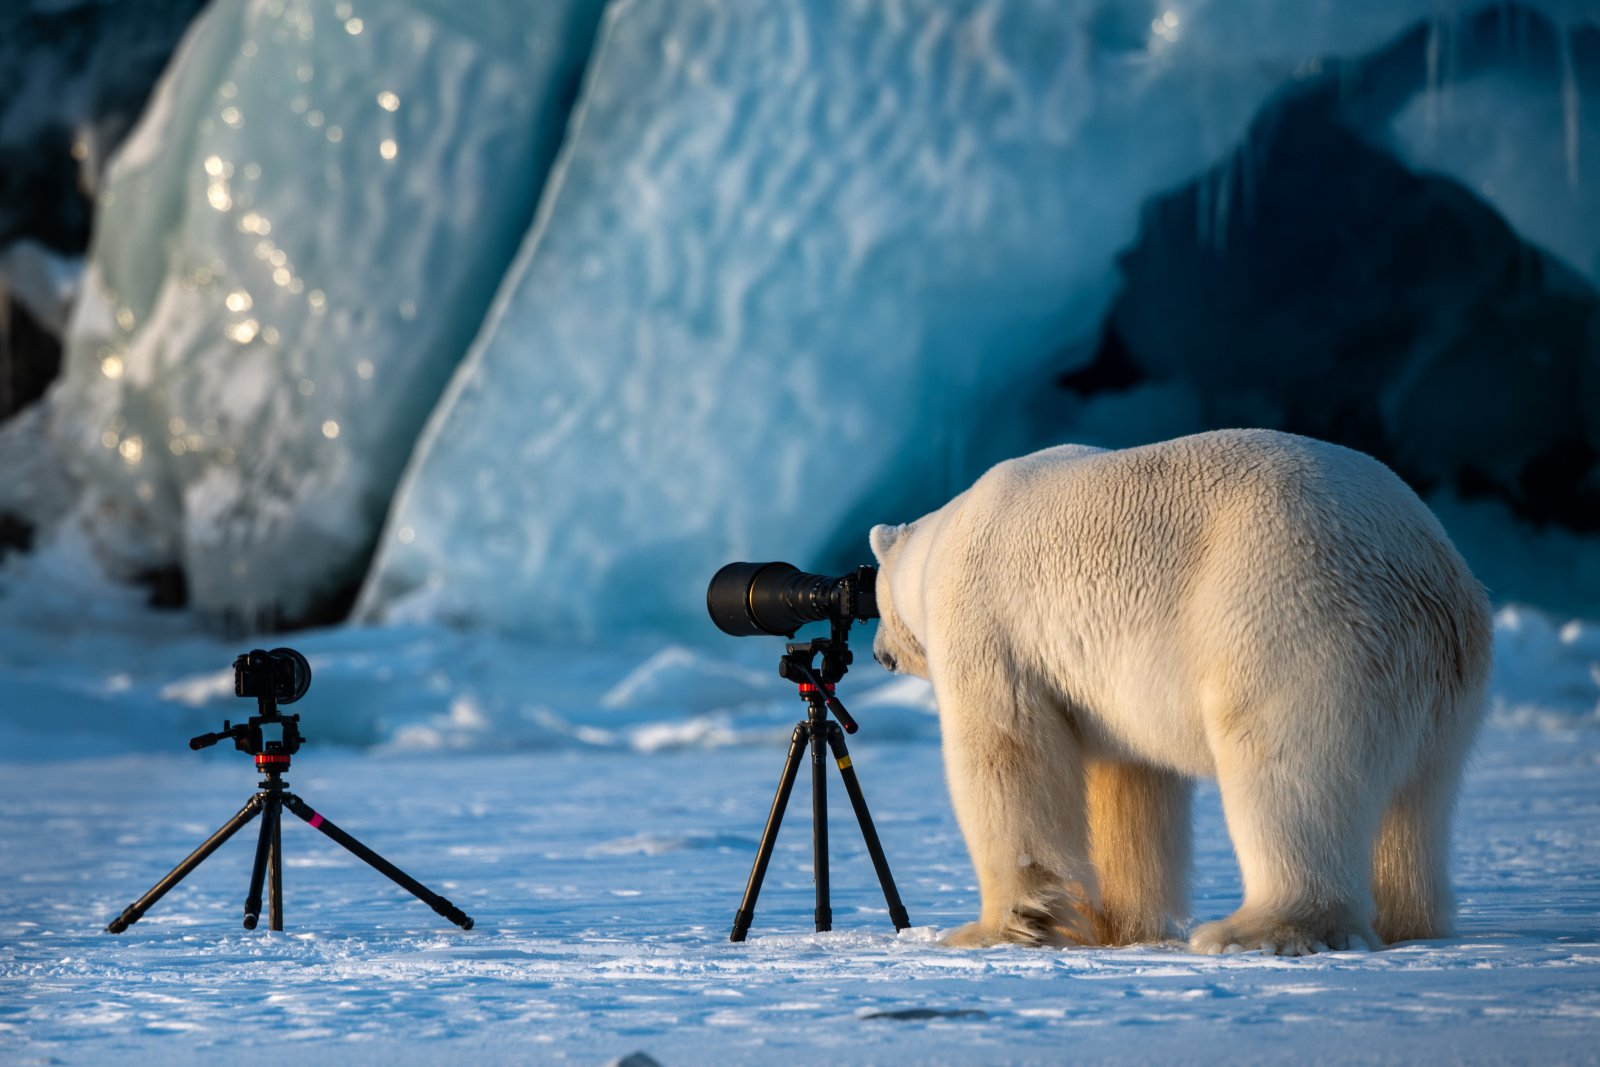 Wildlife PhotograBear, © Roie Galitz, Highly Commended, Comedy Wildlife Photography Awards